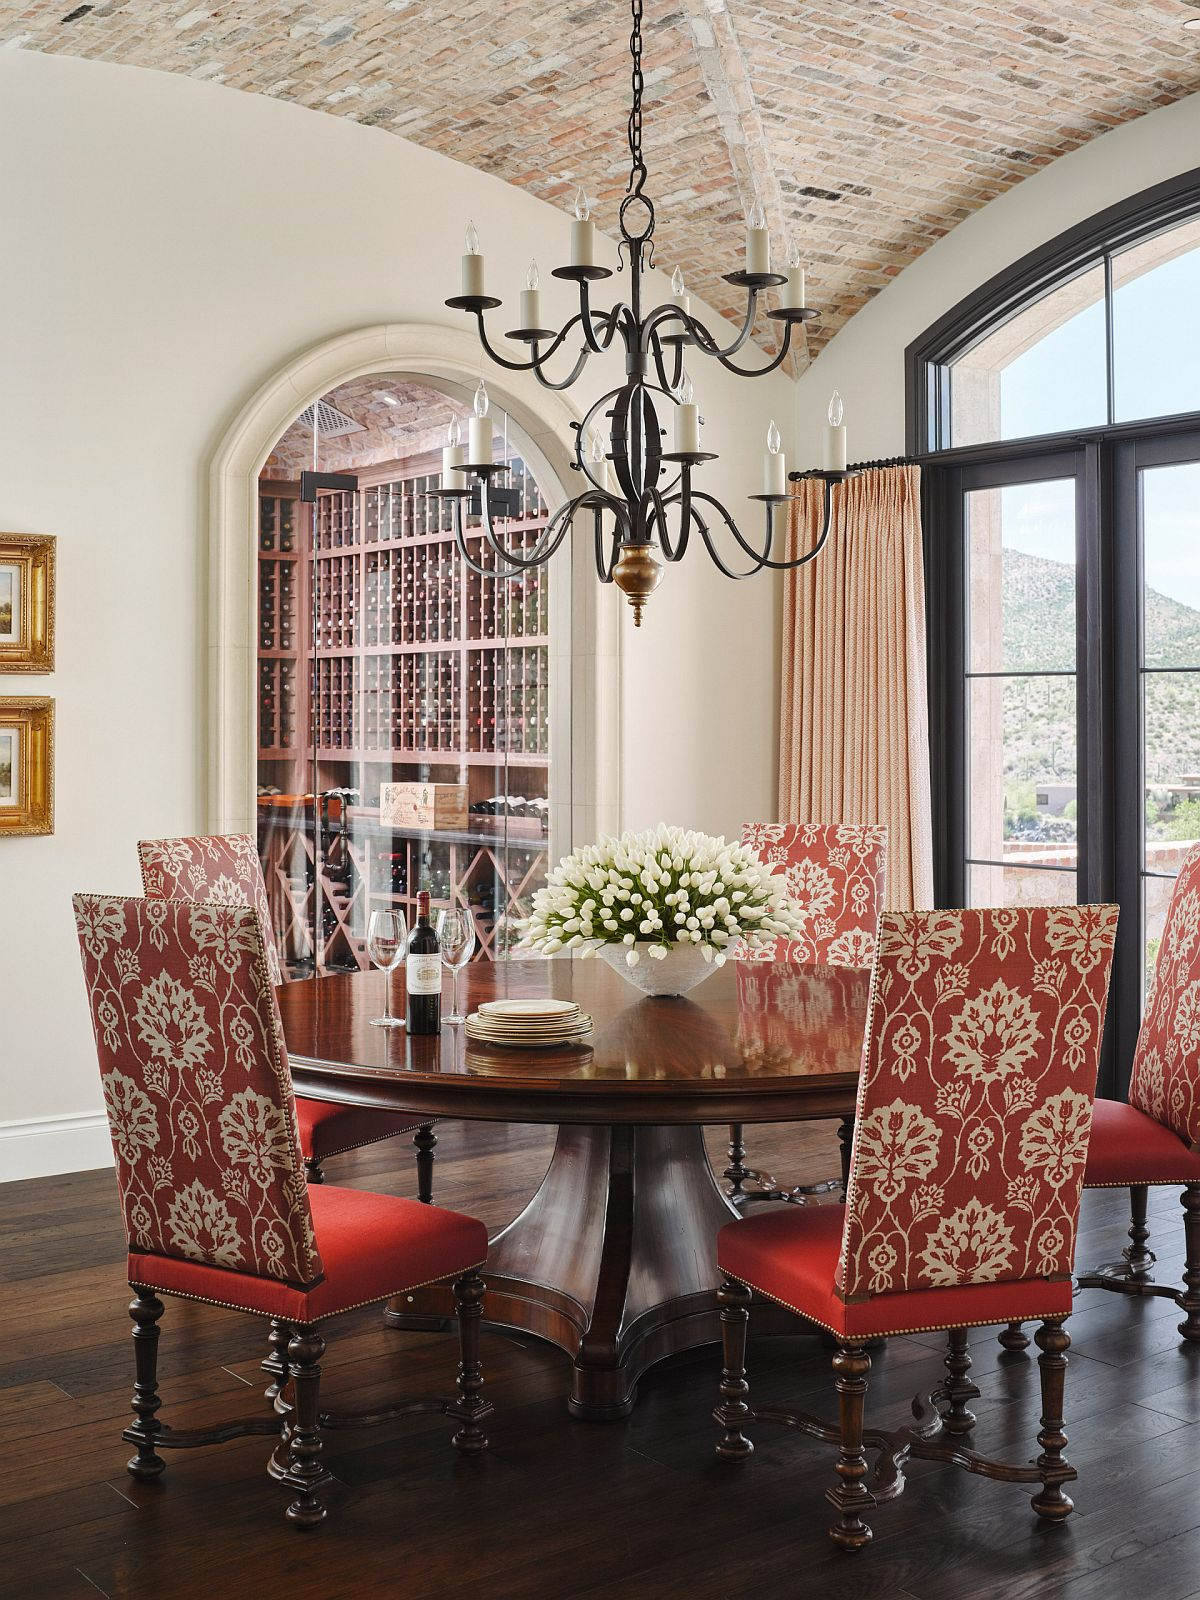 A perfect setting for a small festive feast as you head into fall and the Holiday Season ahead